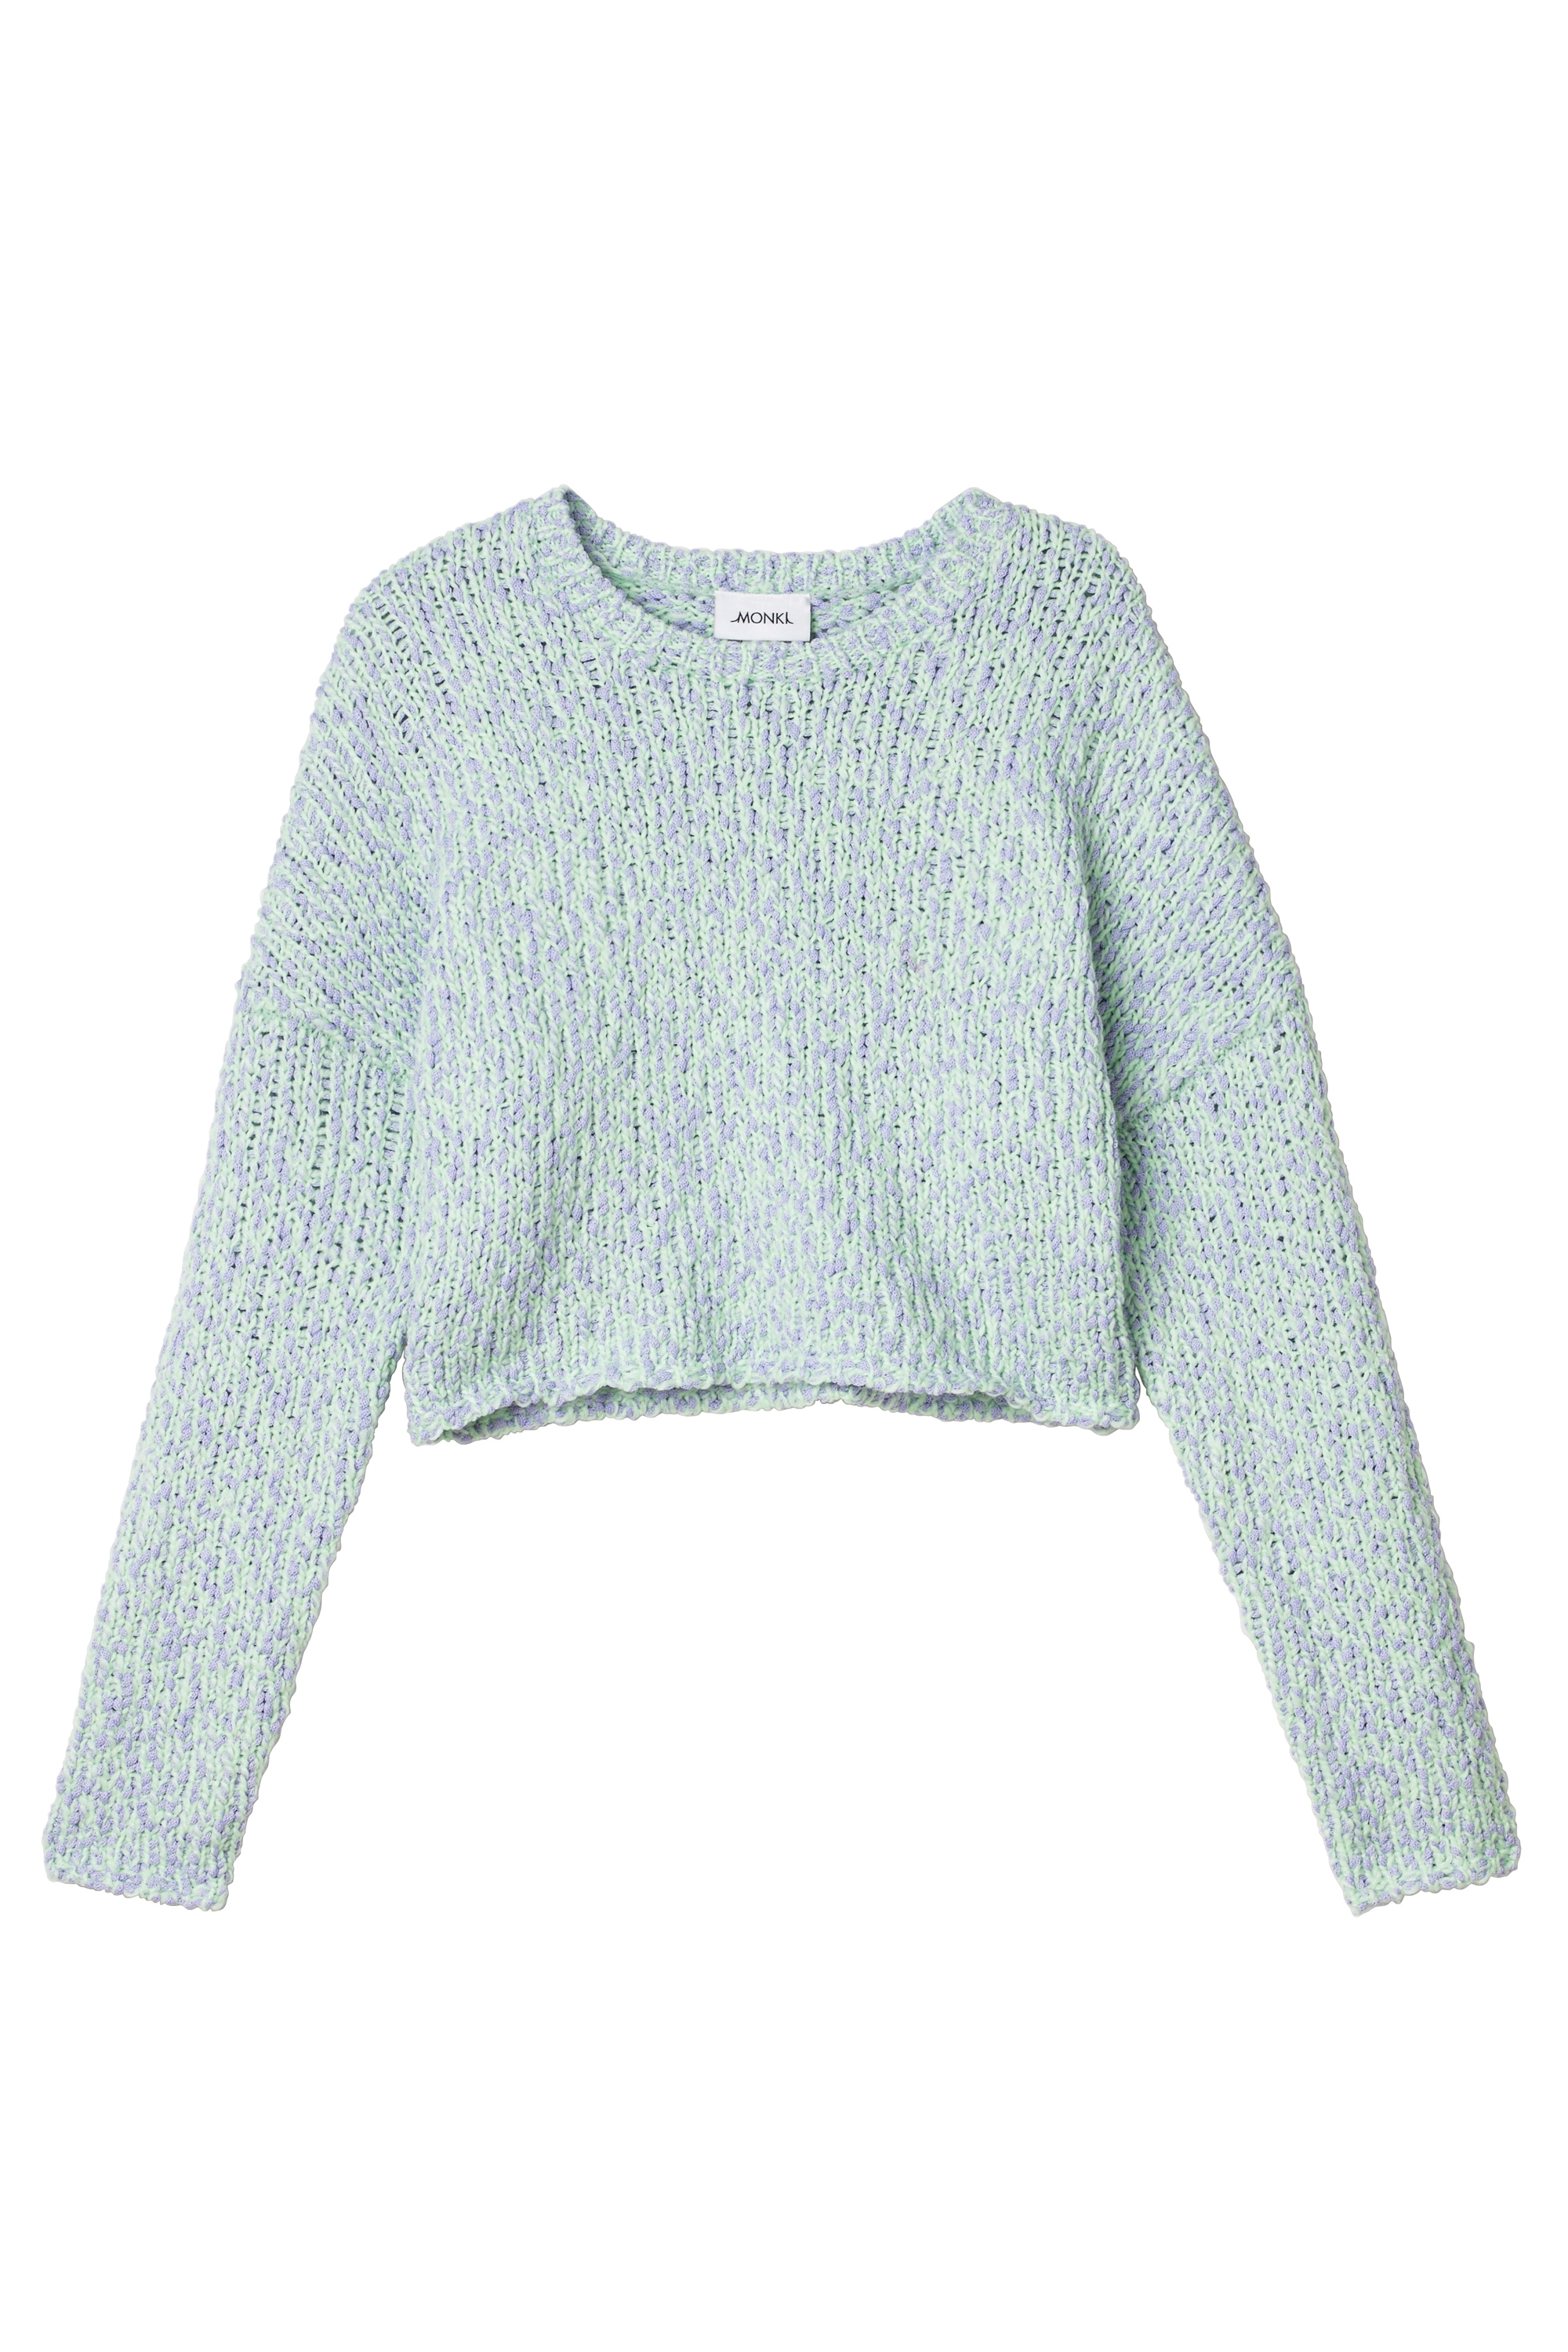 Casey knitted top